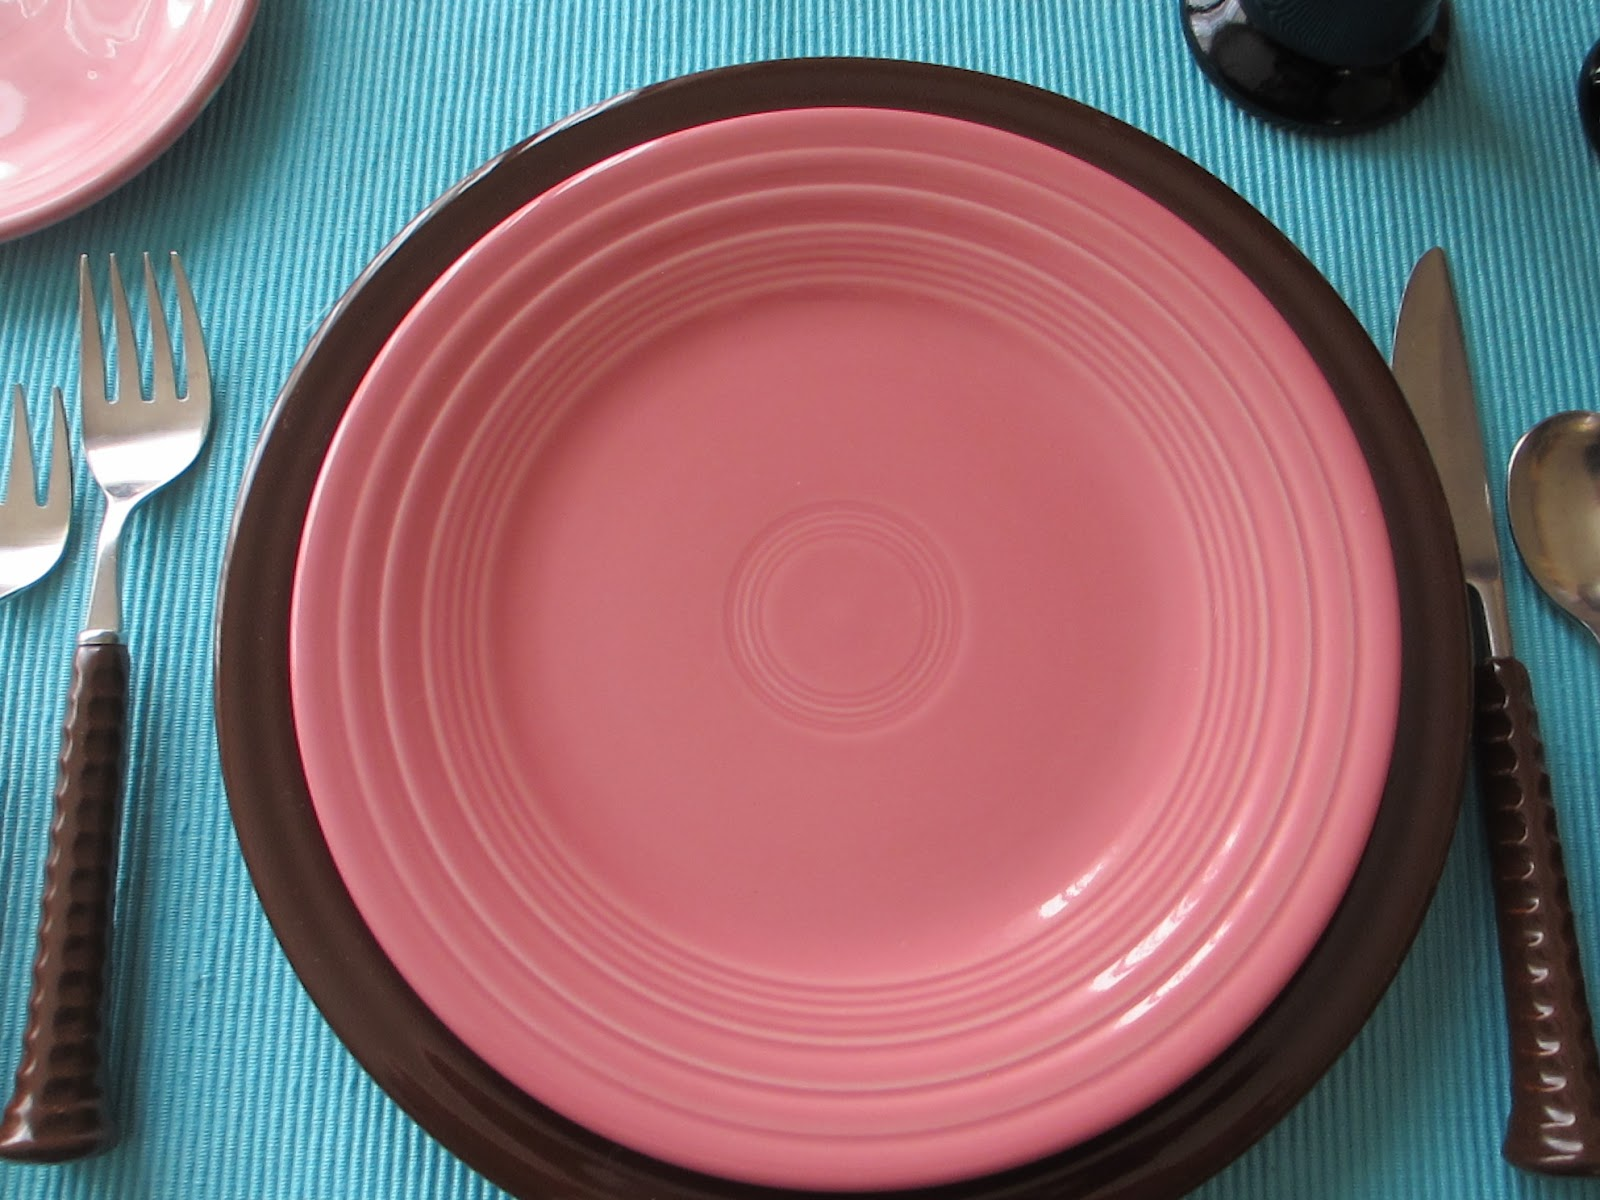 Stacked Fiesta colors are Chocolate Bread/Butter plate Turquoise Salad Plate Rose Luncheon Plate and Chocolate dinner plate used as a charger. & Table for One: Fiestaware Table for One